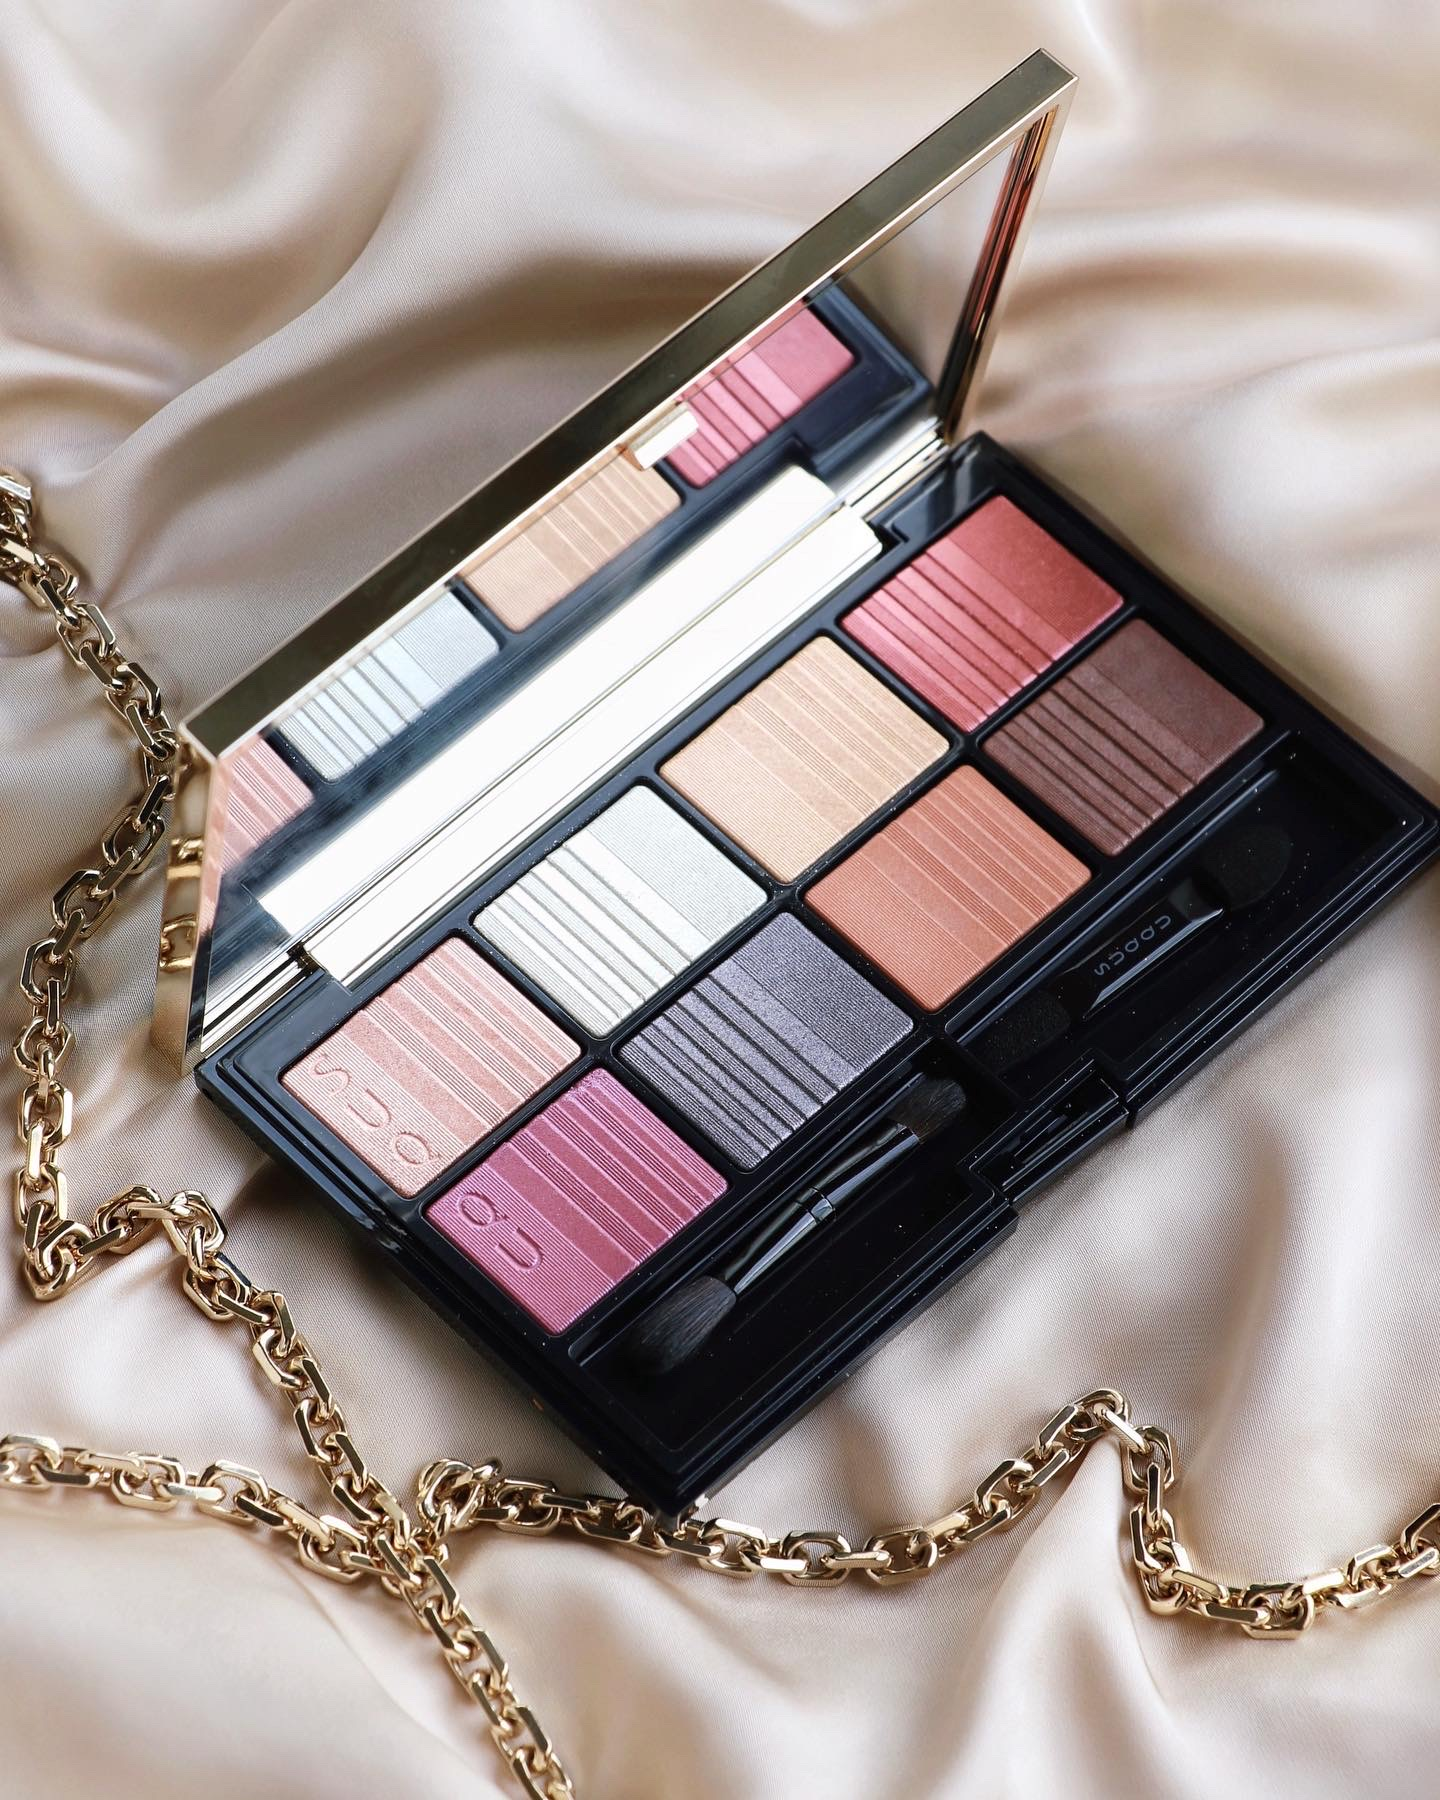 SUQQU 2020 Holiday Collection  Eyeshadow Compact